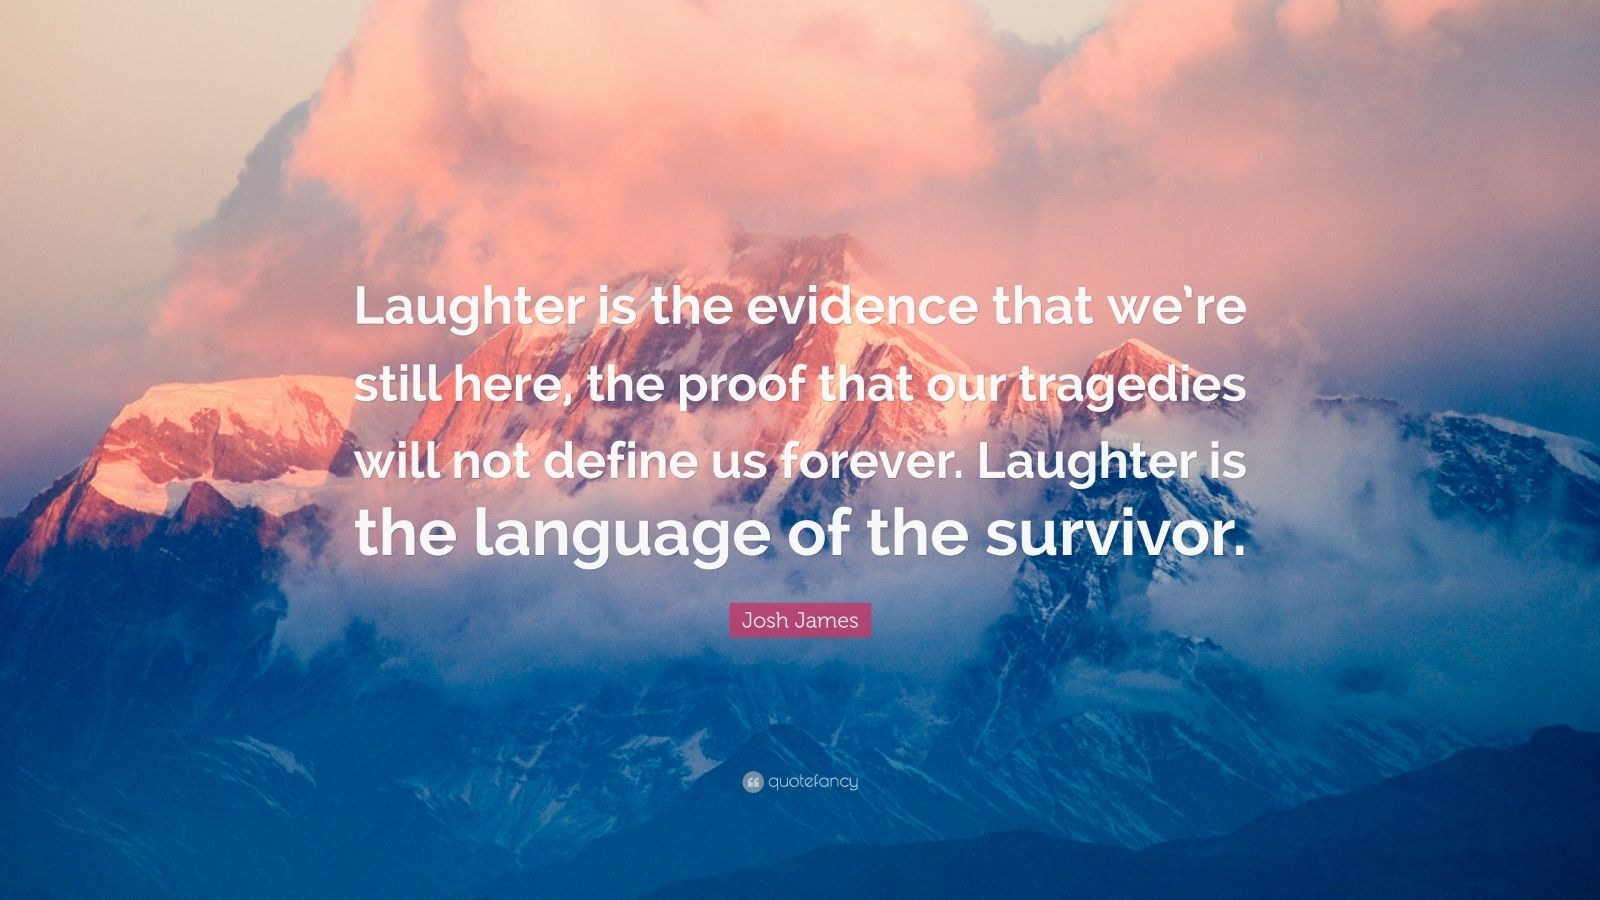 """Josh James Quote: """"Laughter is the evidence that we're still here, the proof that our tragedies will not define us forever. Laughter is the language of the survivor."""""""